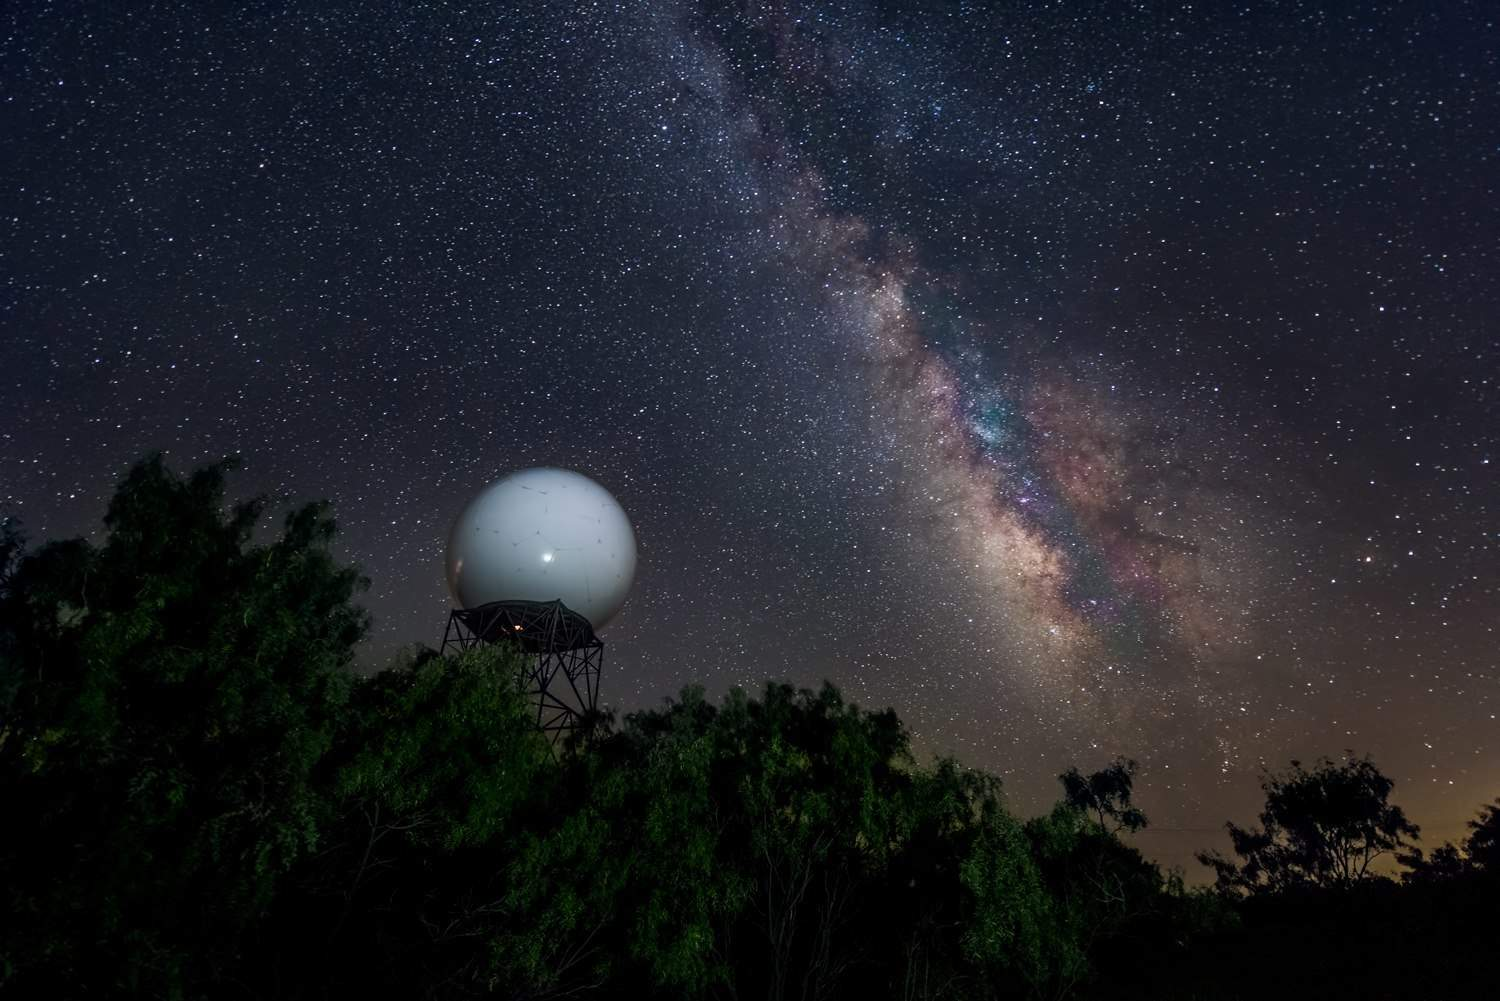 No storms worthy of mentioning in DFW right now - BUT I did manage to snag a picture of the weather doppler outside of Albany, Texas last Saturday night, and the milky way. This one is definitely going on my wall.